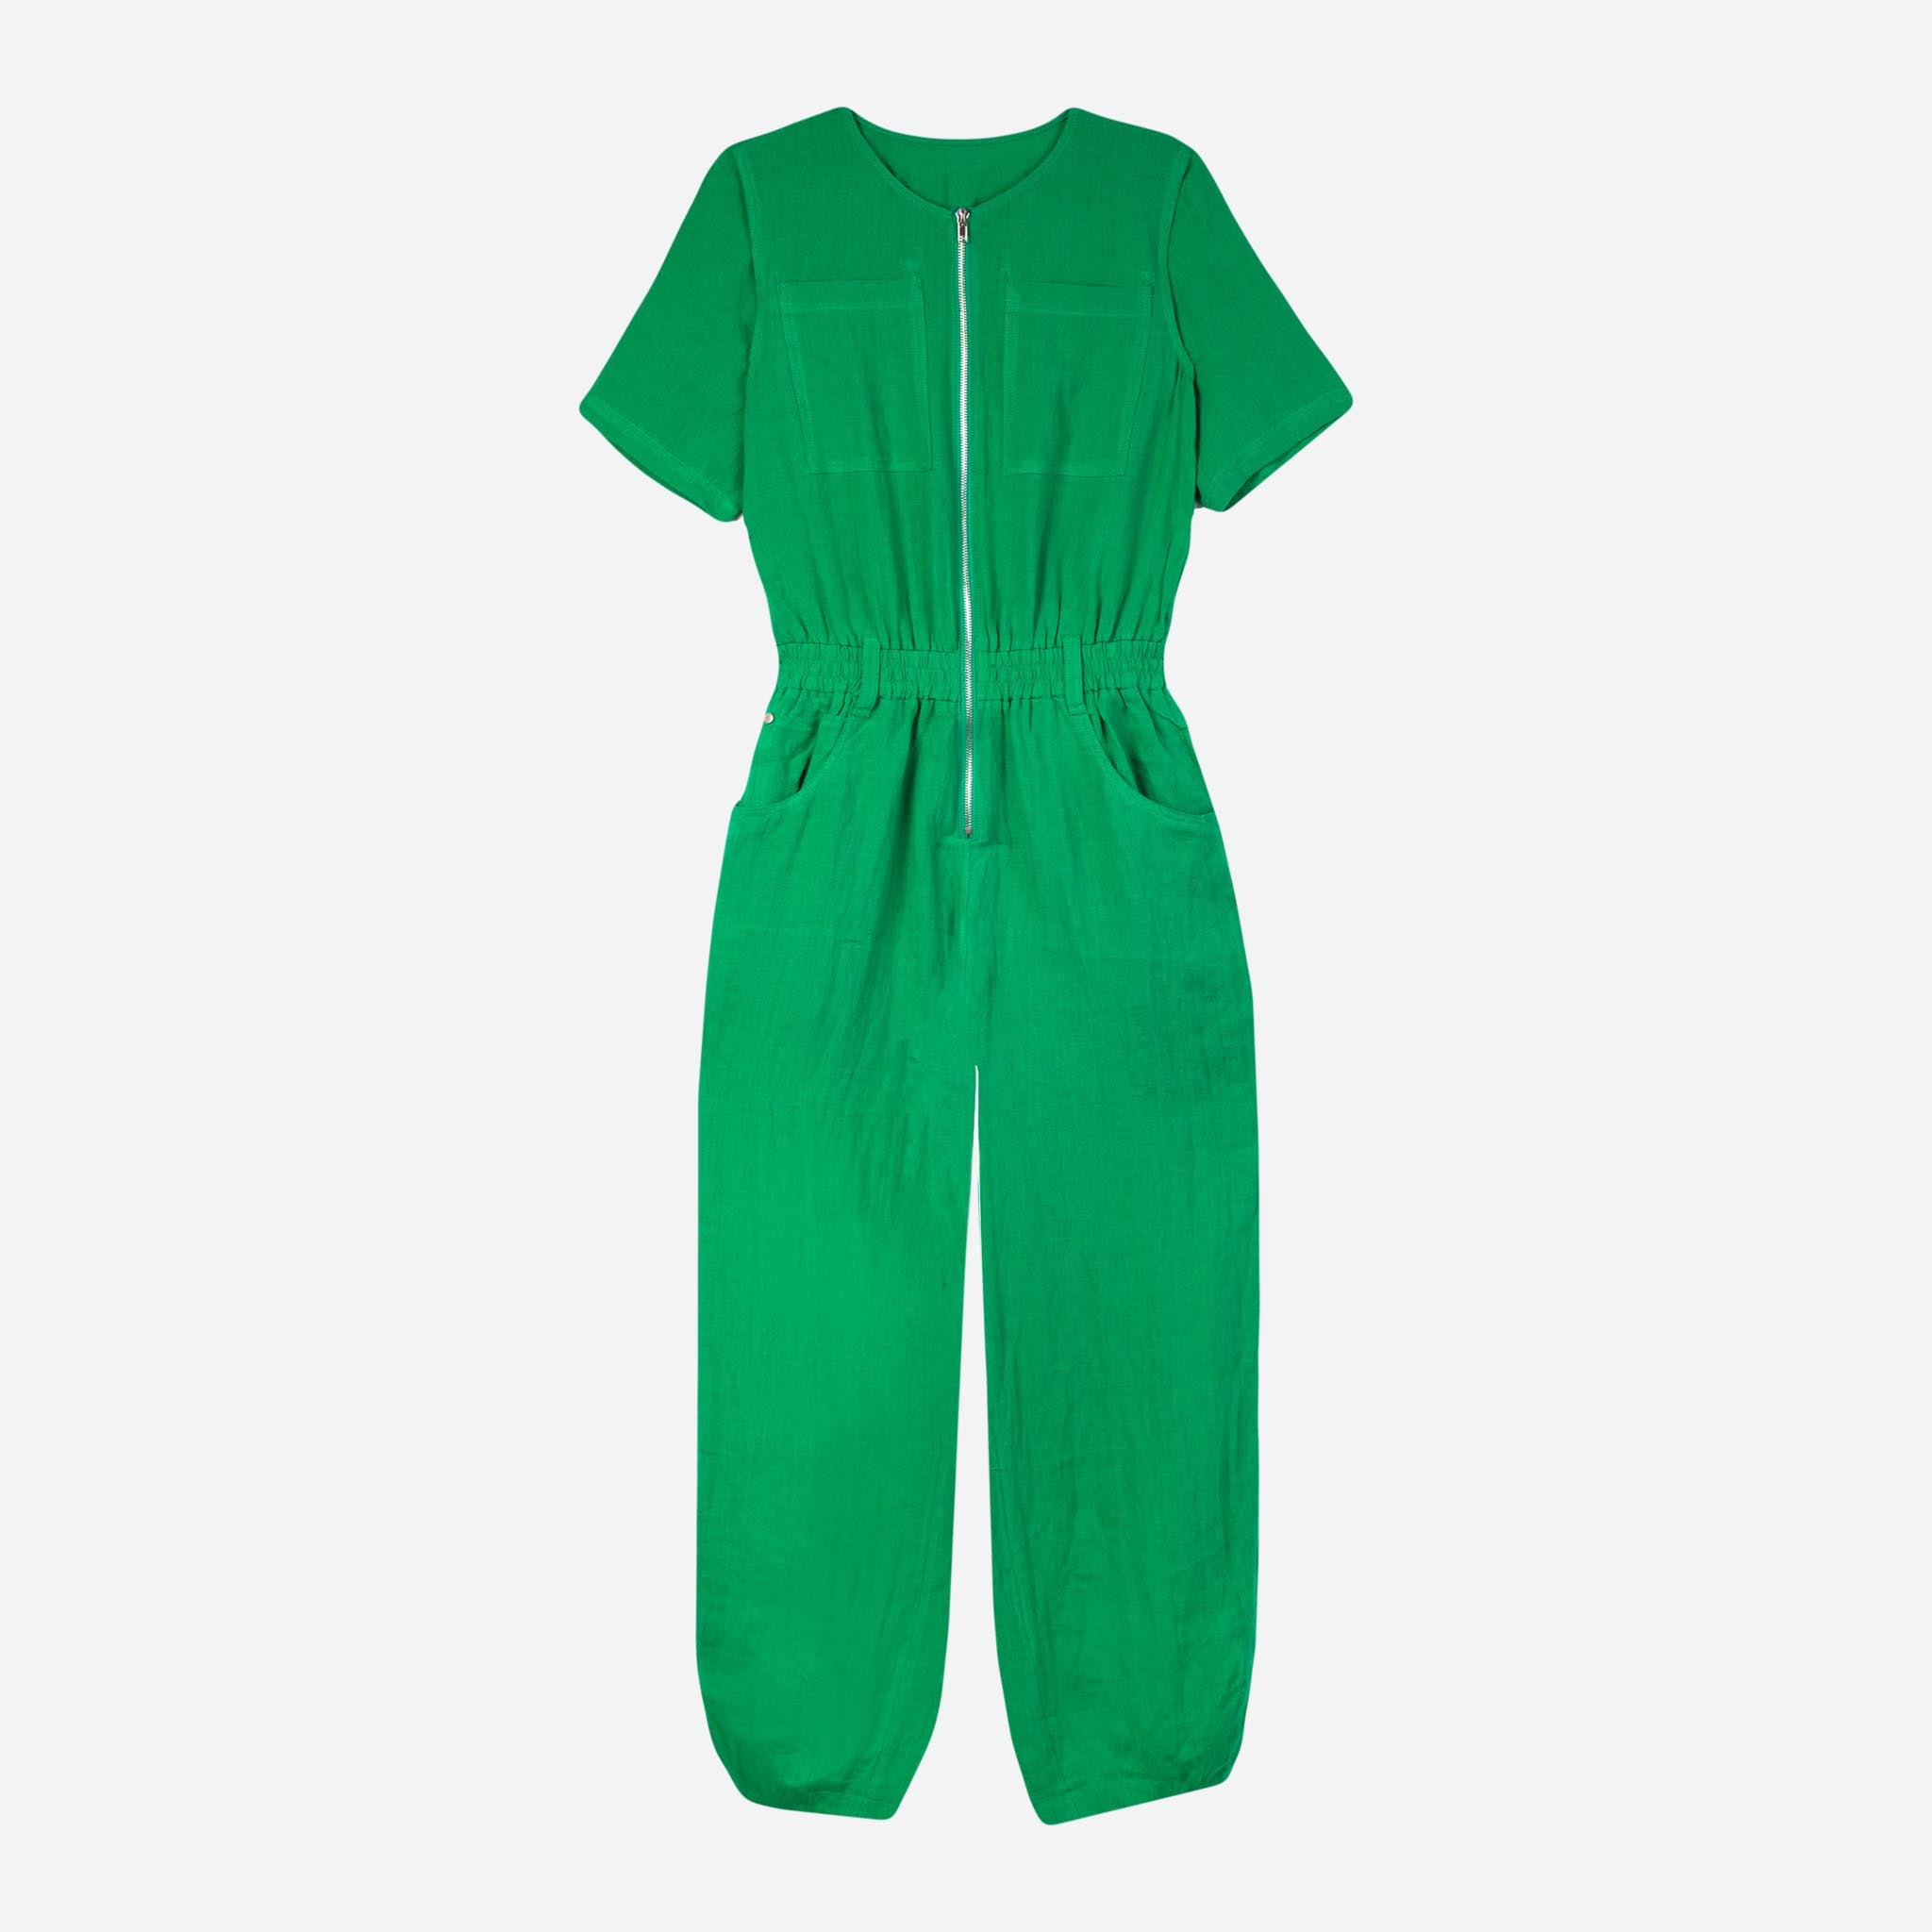 LF Markey Francis Boilersuit in Green